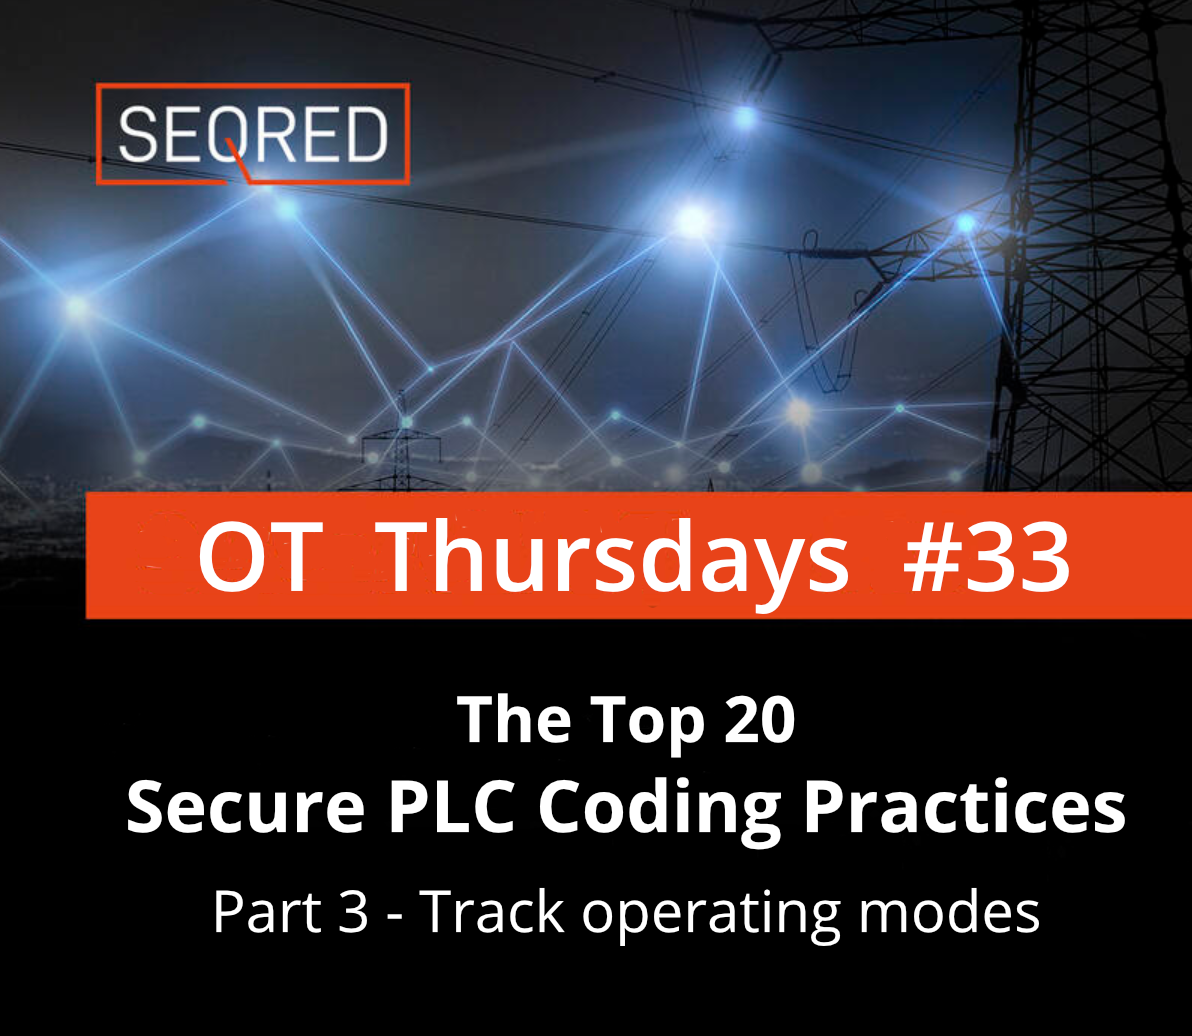 The Top 20 Secure PLC Coding Practices. Part 3 - Track operating modes